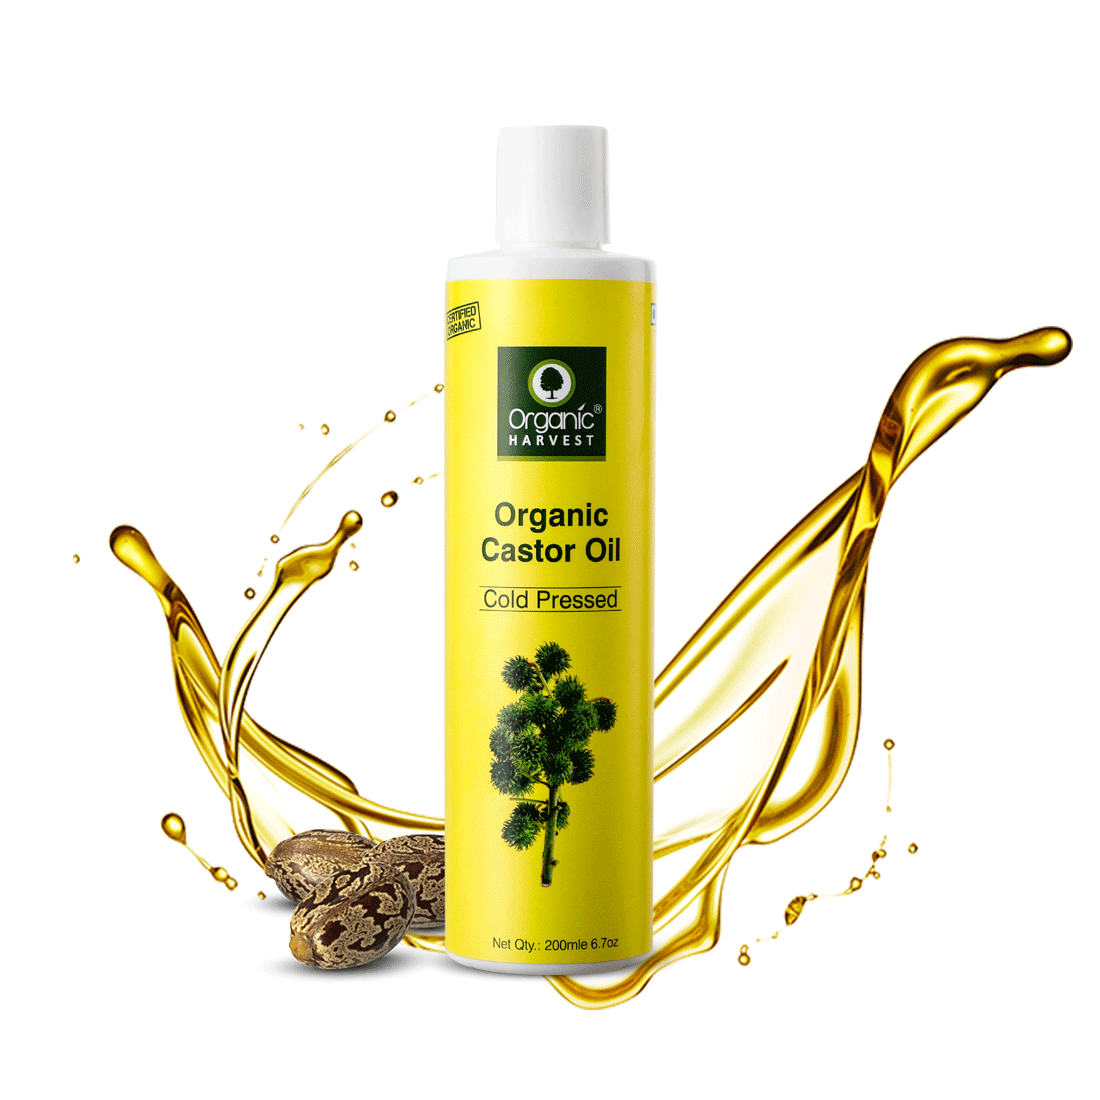 Organic Harvest | Organic Harvest Cold Pressed Castor Oil, For Moisturizing Skin, Hair & Nail Growth, Eyelash Thickening, 100% Pure, 100% Organic, Sulphate And Paraben Free – 200 ml